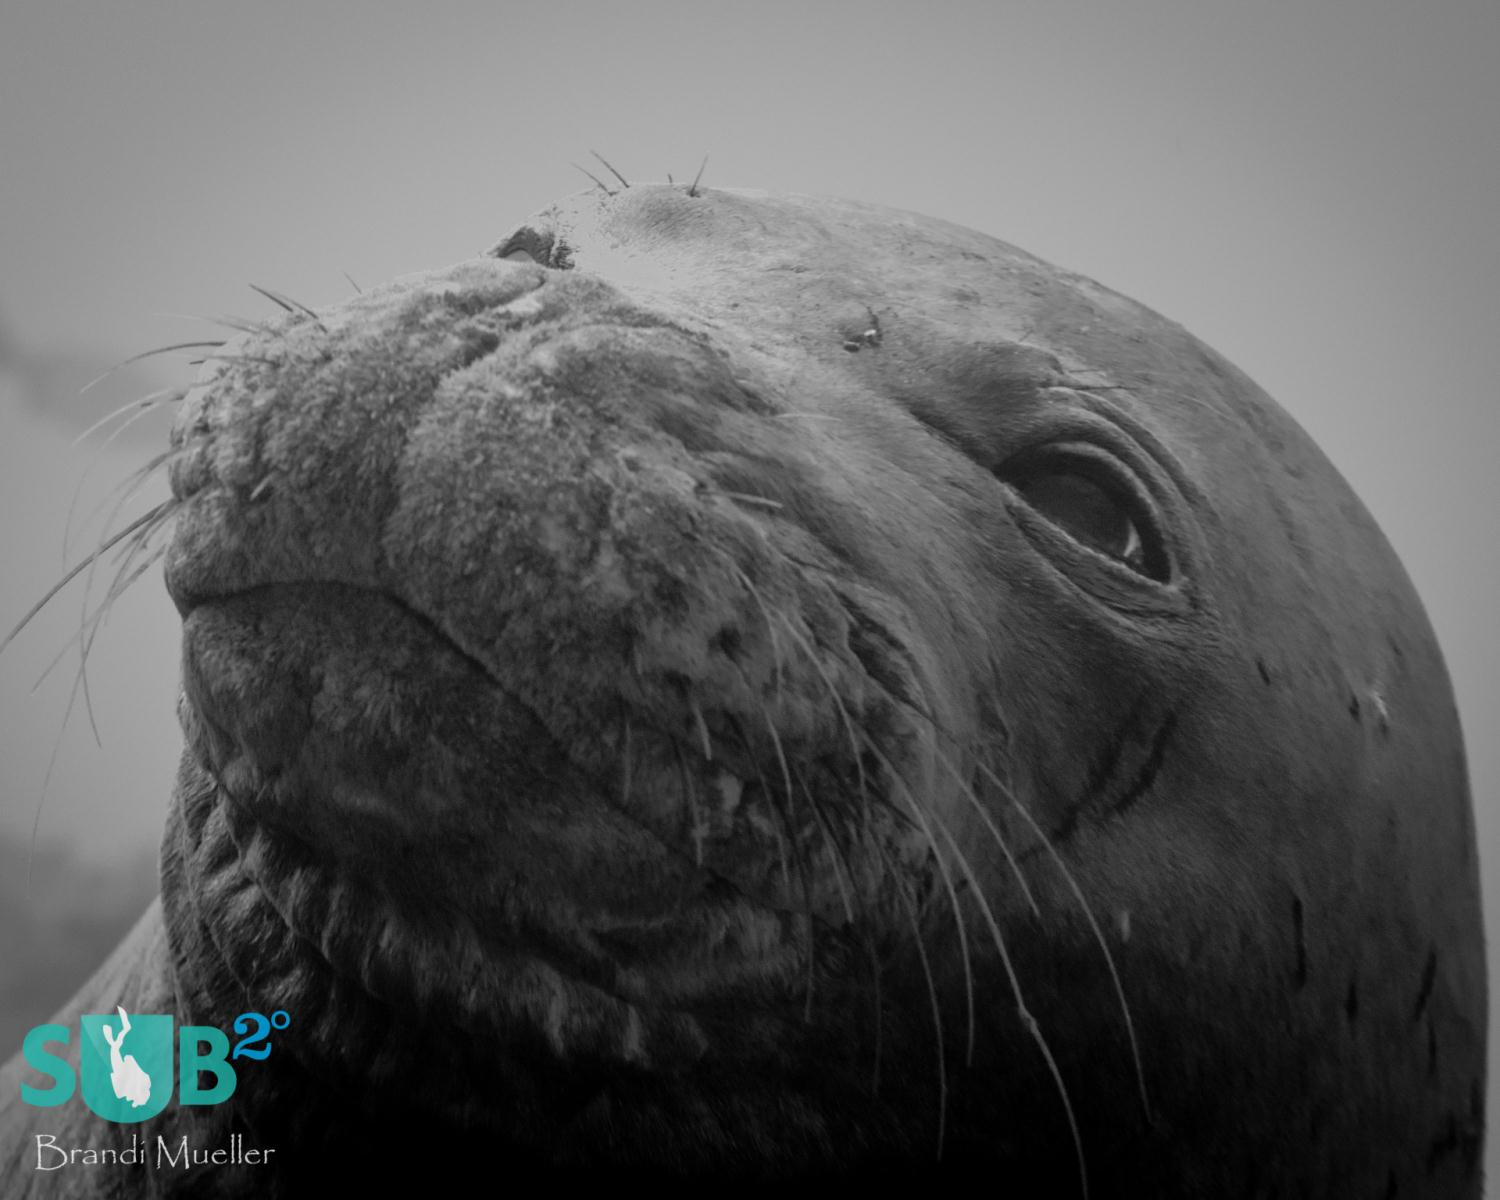 Often inquisitive underwater, the Hawaiian monk seals may come very close to divers. Seals are always fun to dive with, but having a chance to dive with this endangered mammal can make a dive even more special.